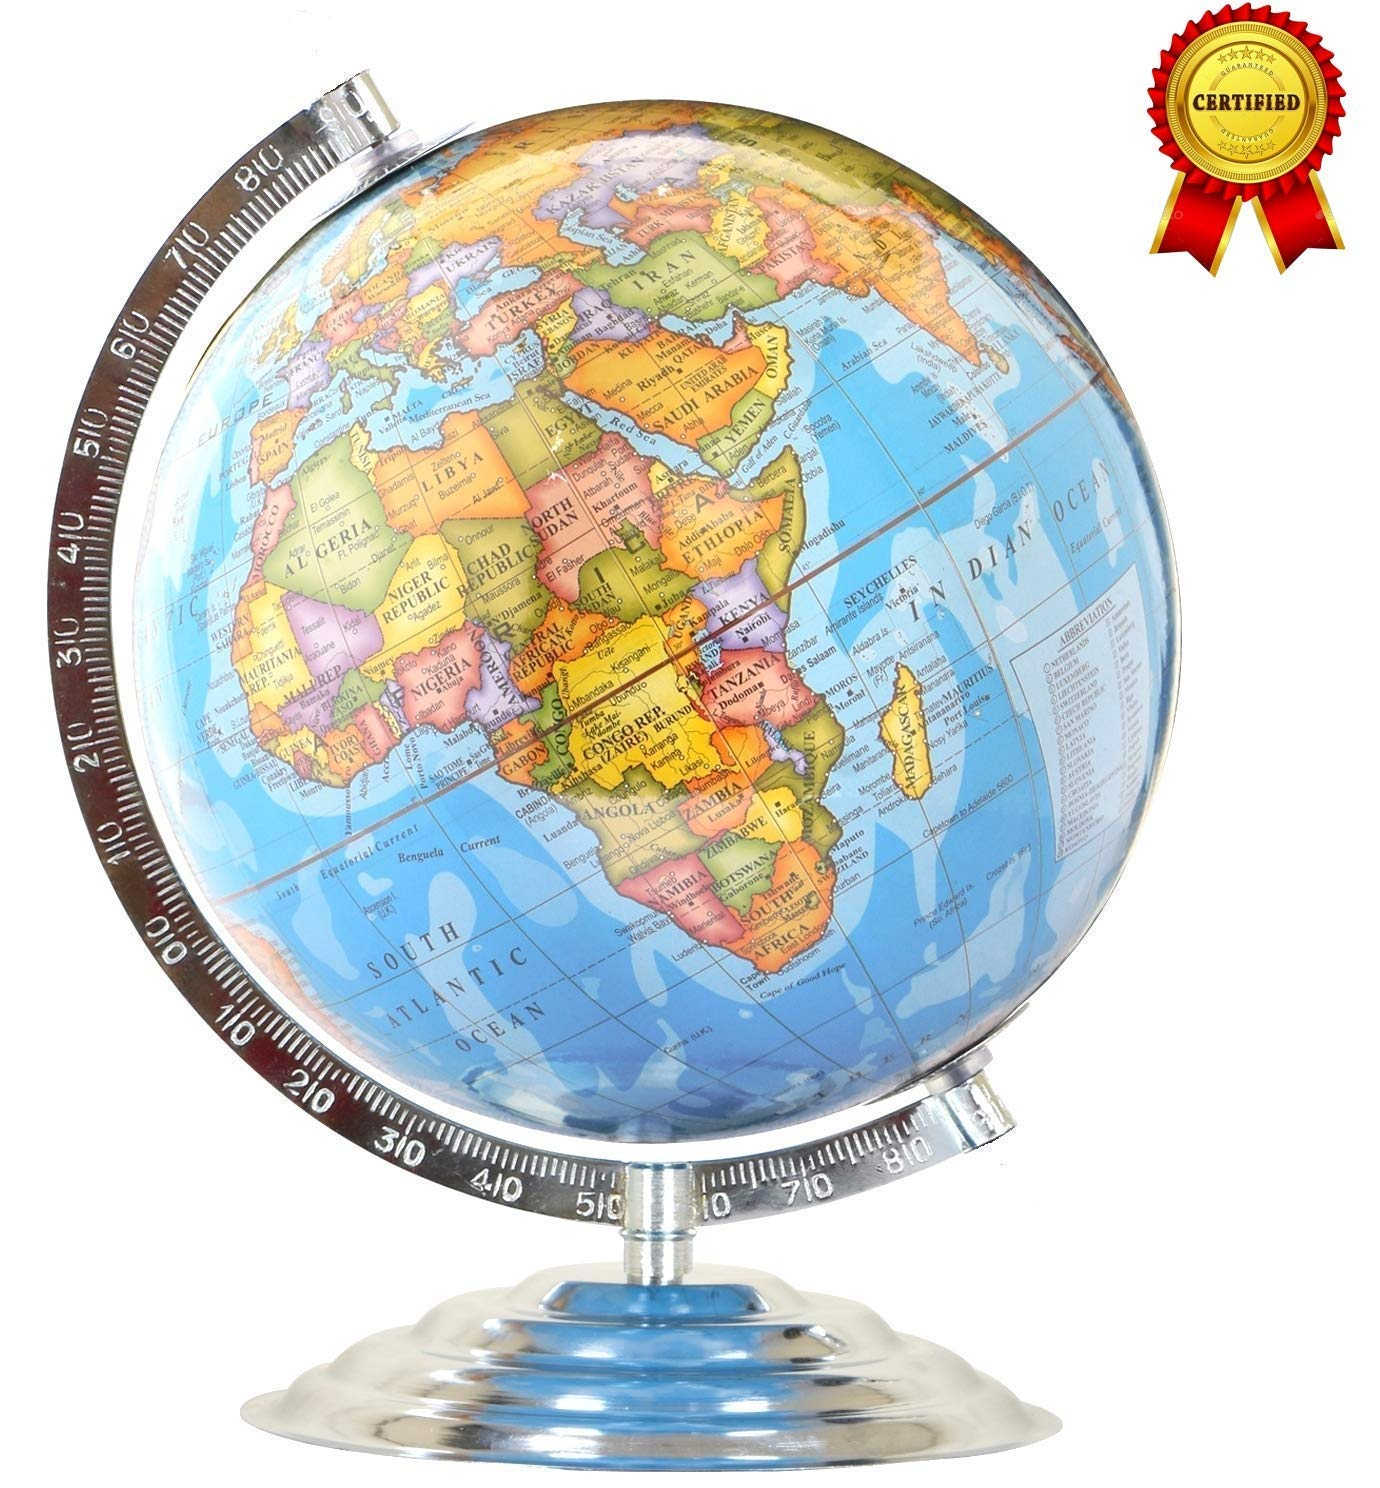 SB07 12 Inch Globe for Table/Globes for Student/World Map Globe/Home Decor/ Globe/Political Globe/Globe for Kids: Amazon.in: Toys & Games